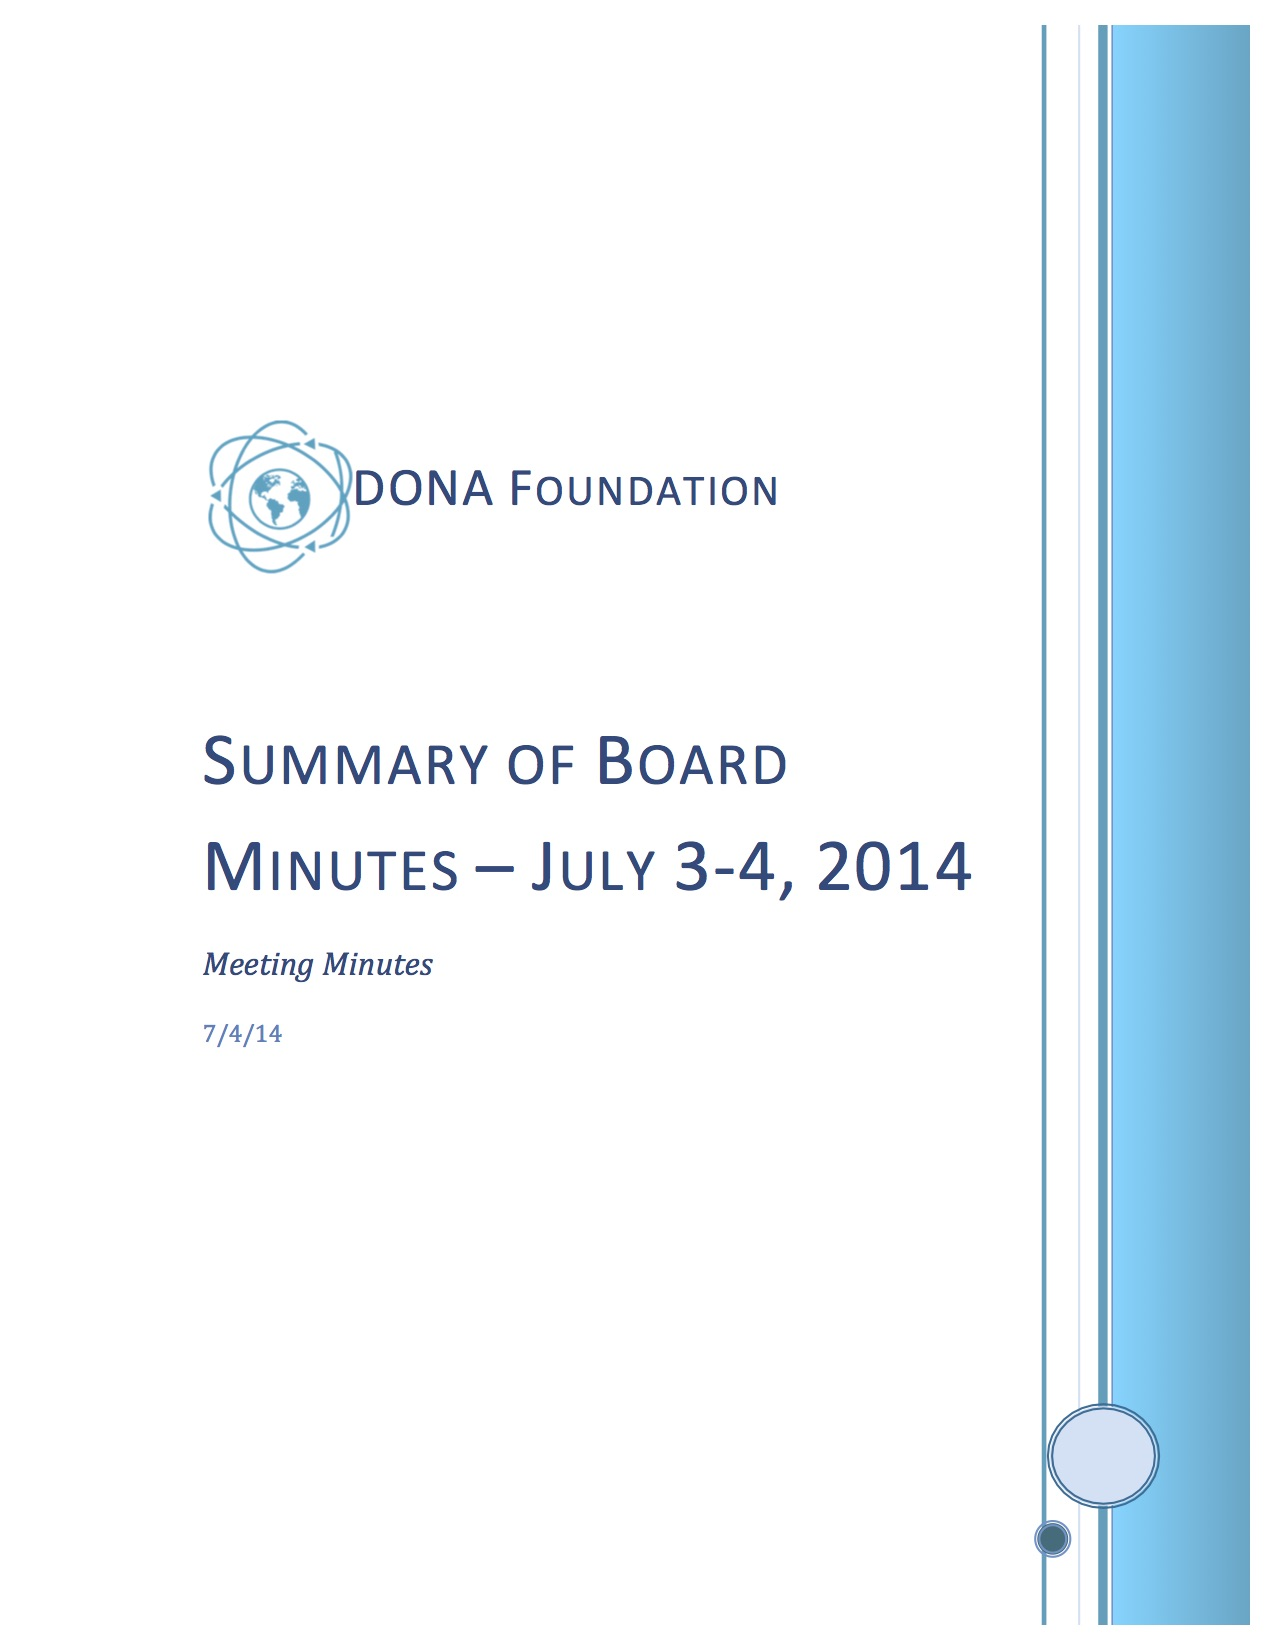 Summary of Board Minutes July 3-4, 2014